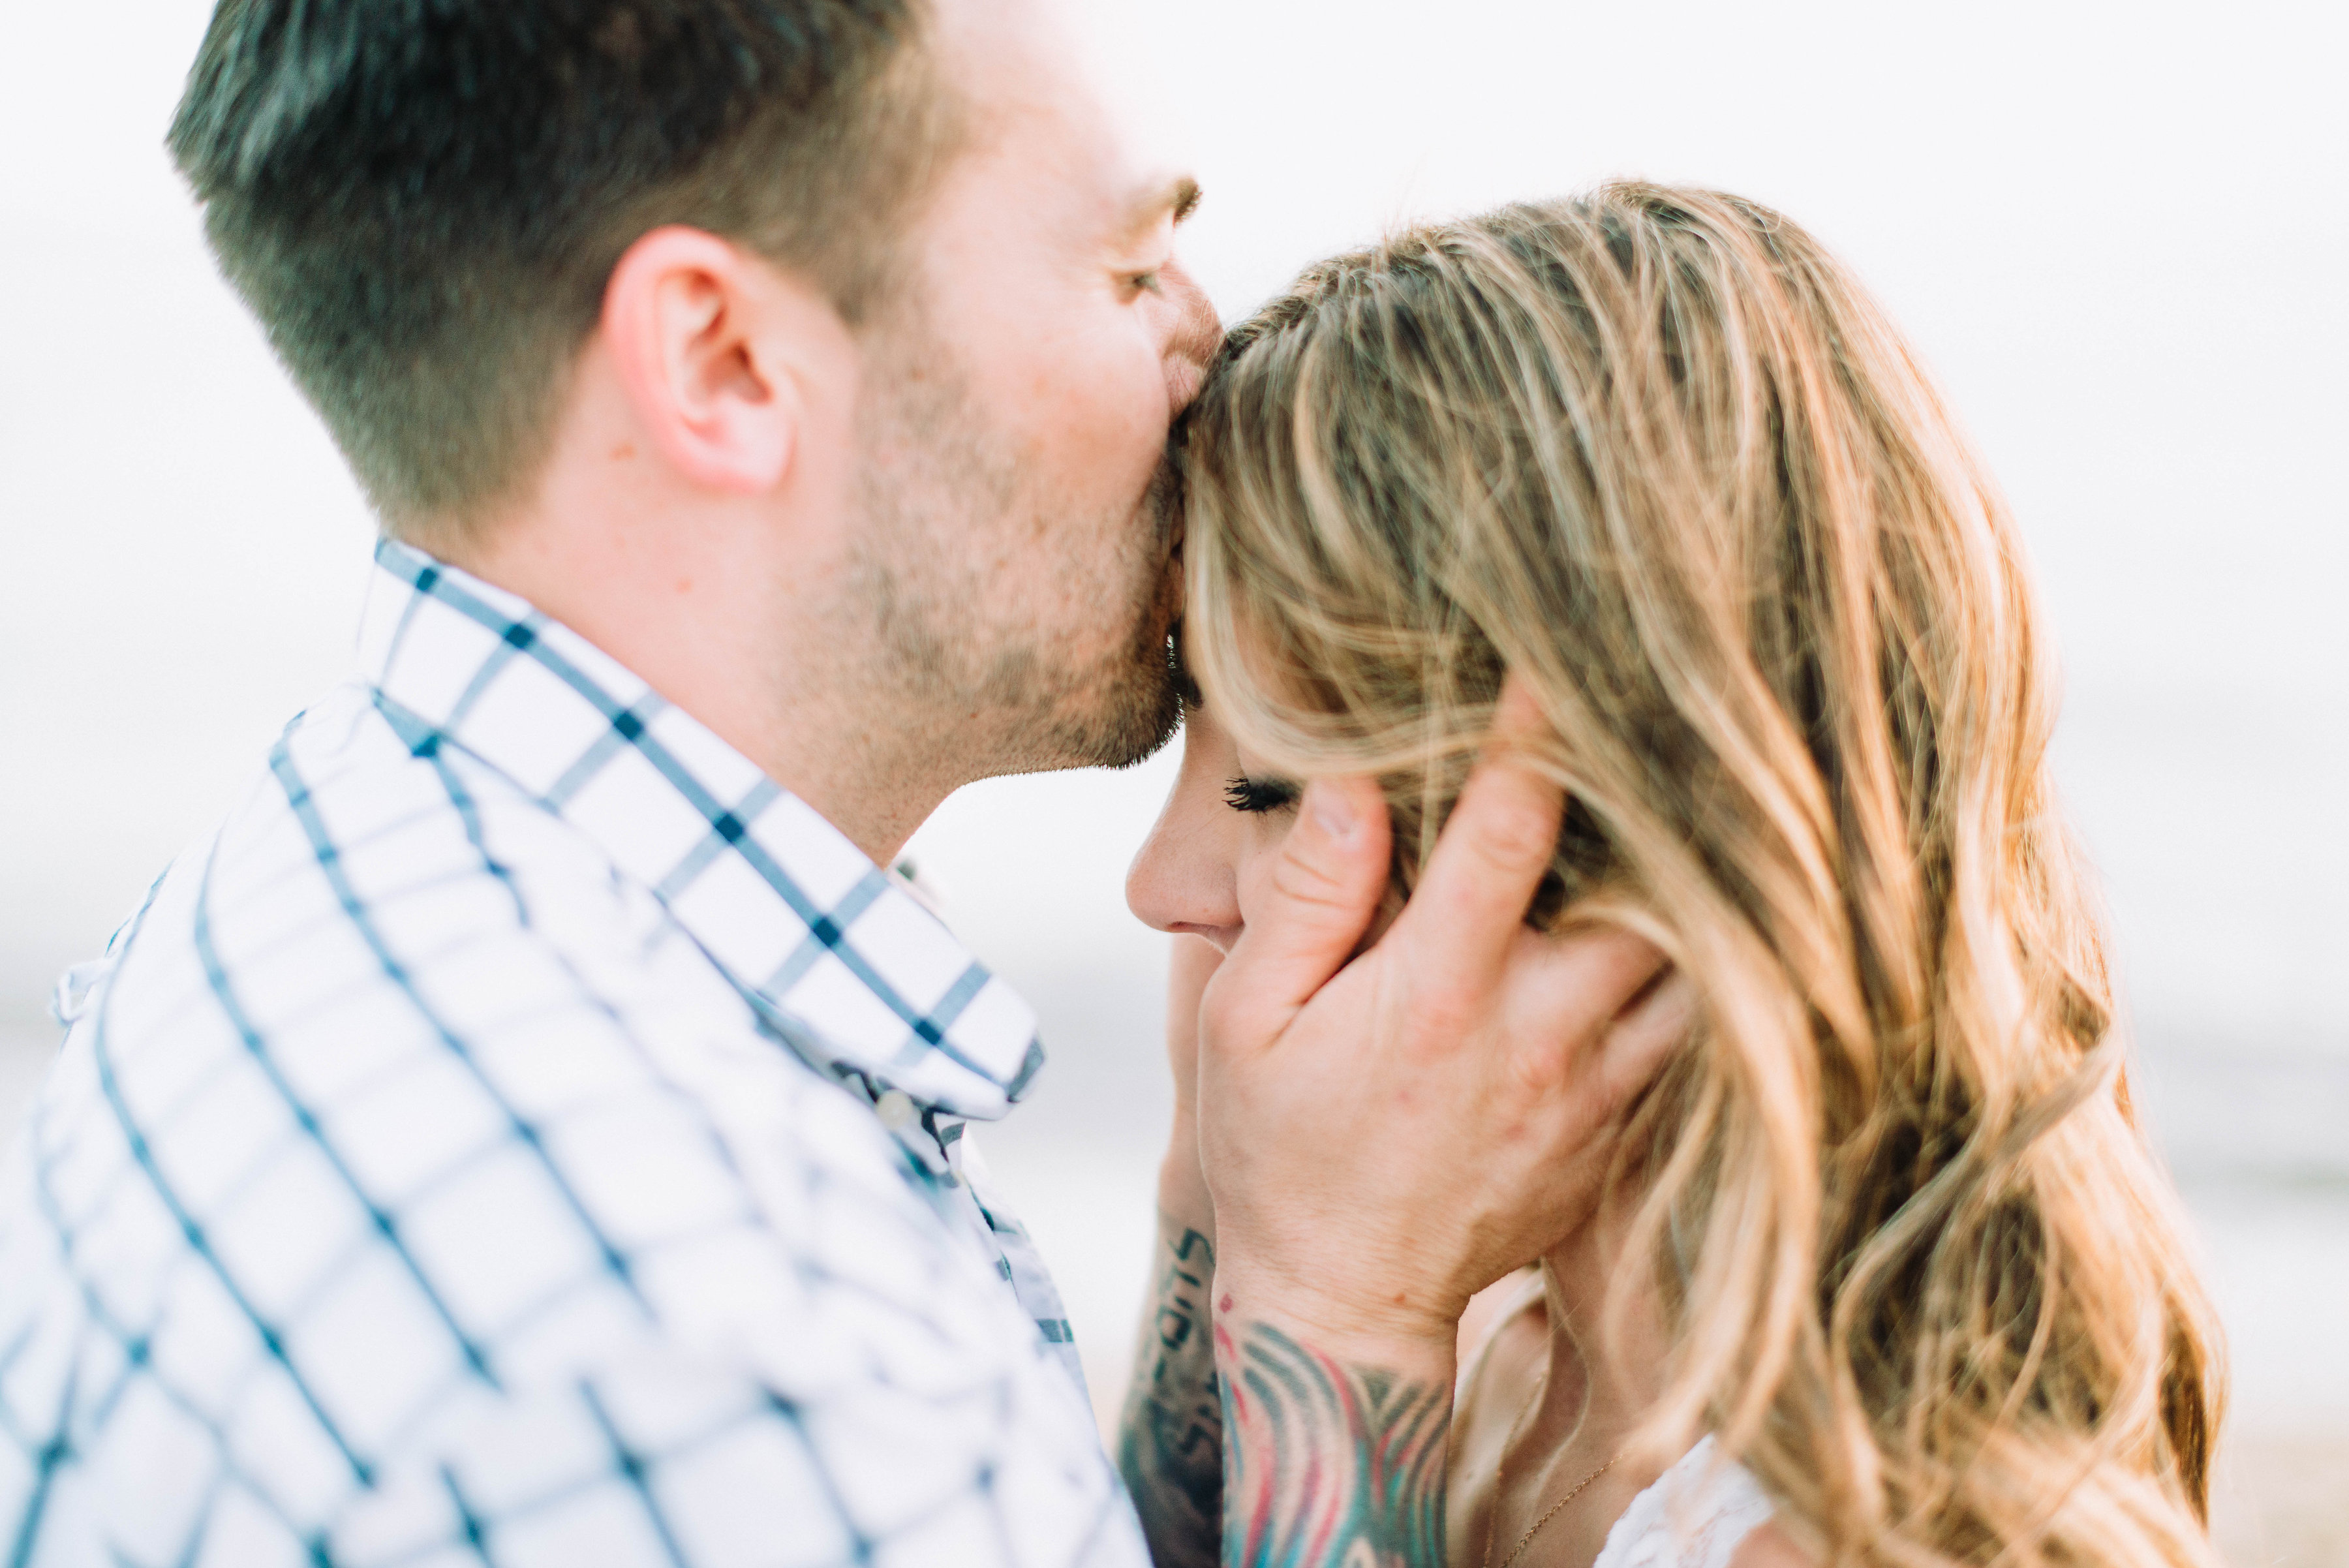 We often hear this from a woman's standpoint, and rightfully so, but this is a male perspective on miscarriage and the lasting effects it has years later.